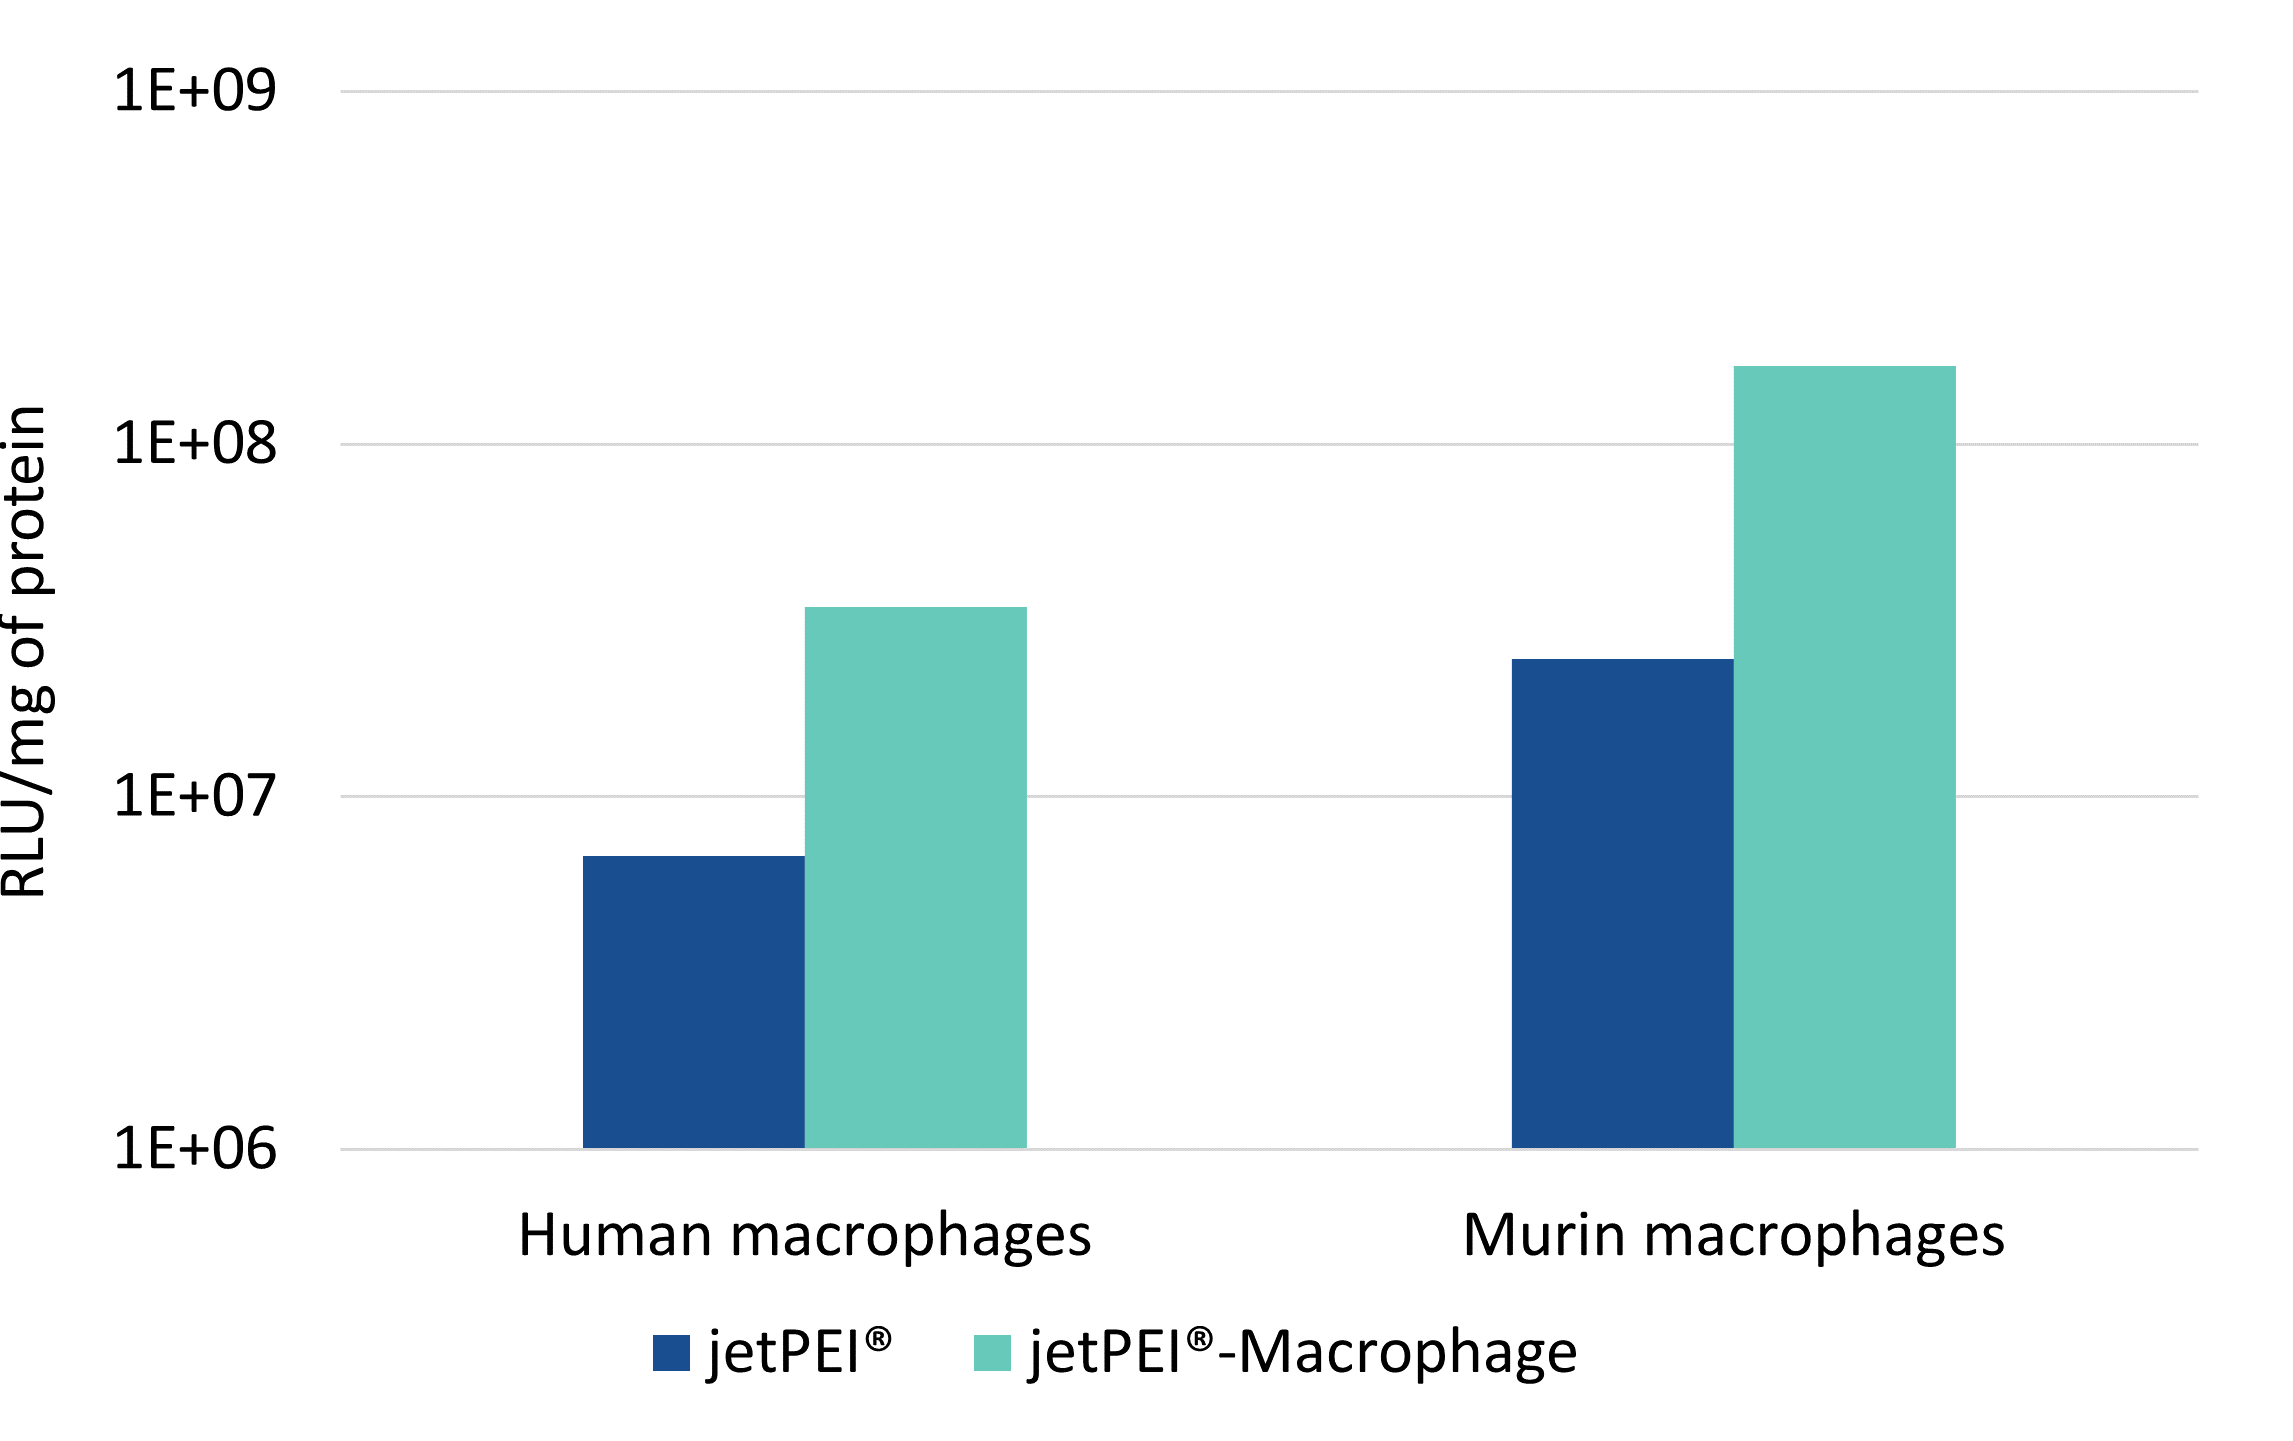 jetPEI-Macrophage - comparison jetPEI